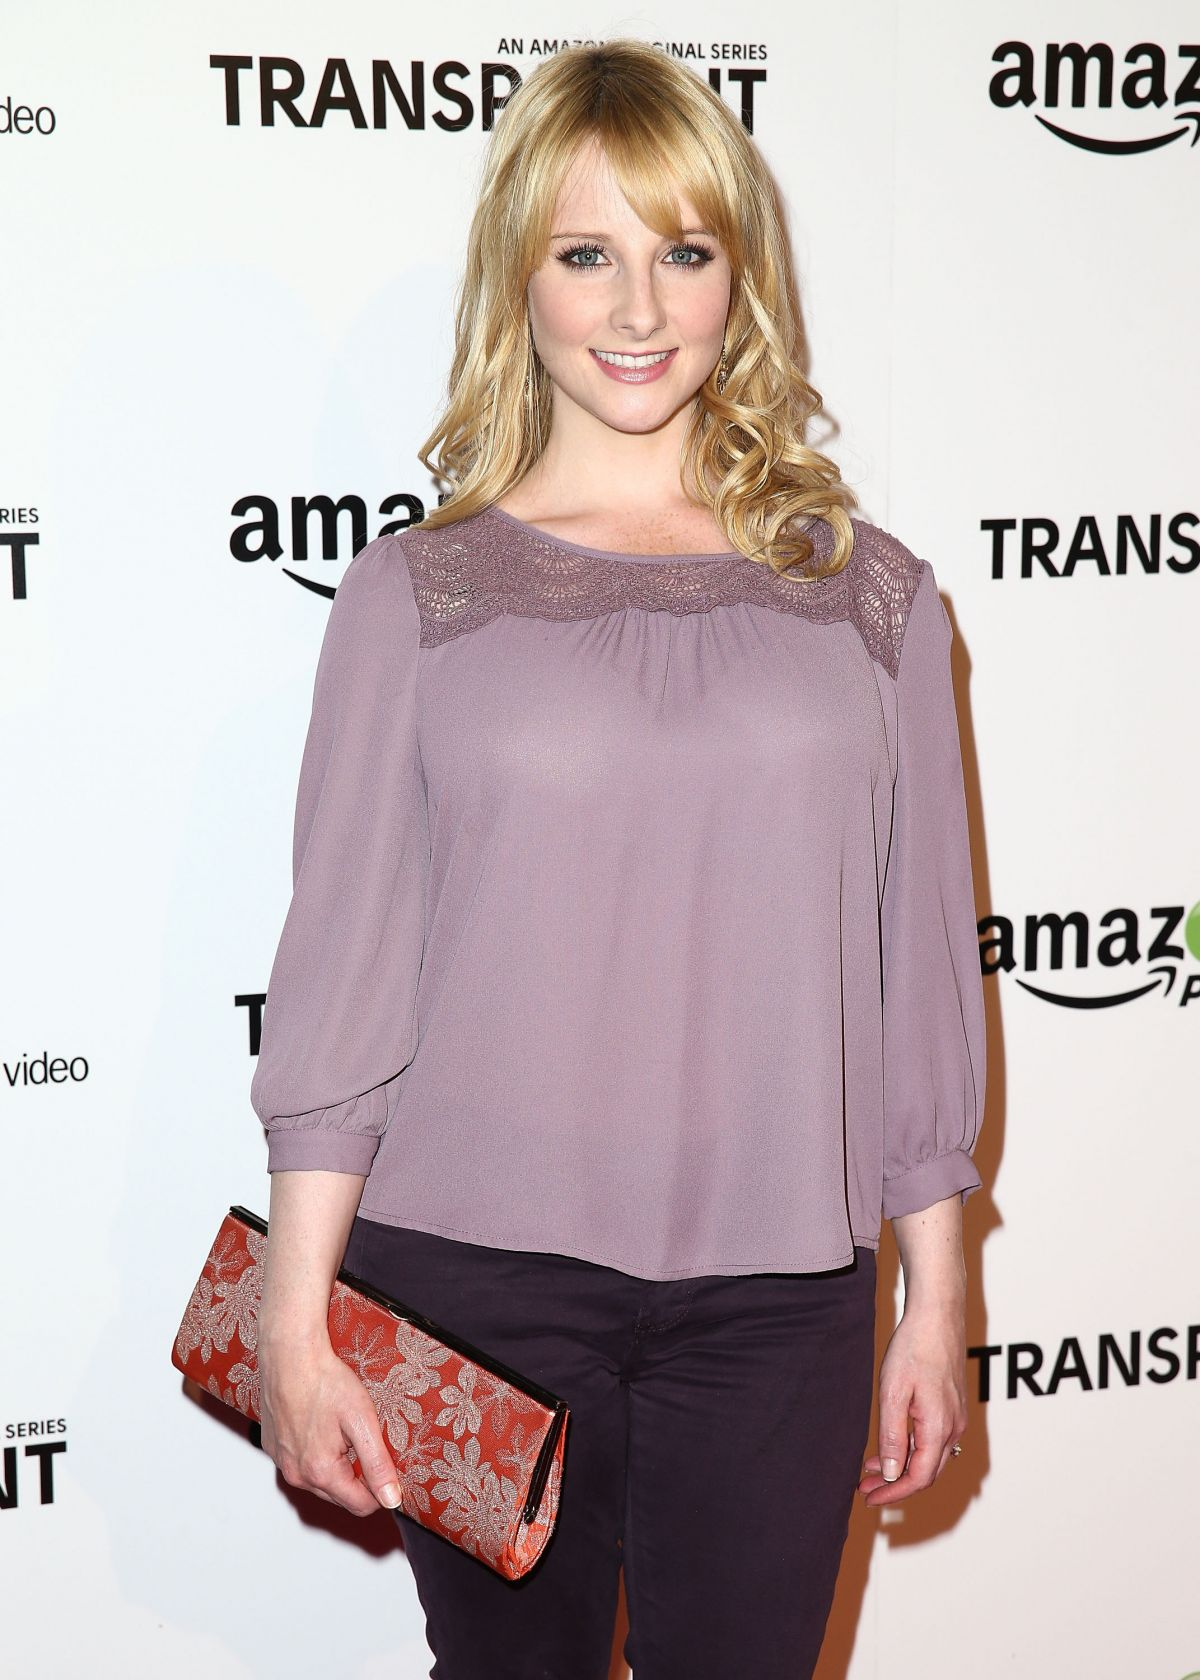 MELISSA RAUCH at Transparent Premiere in Los Angeles